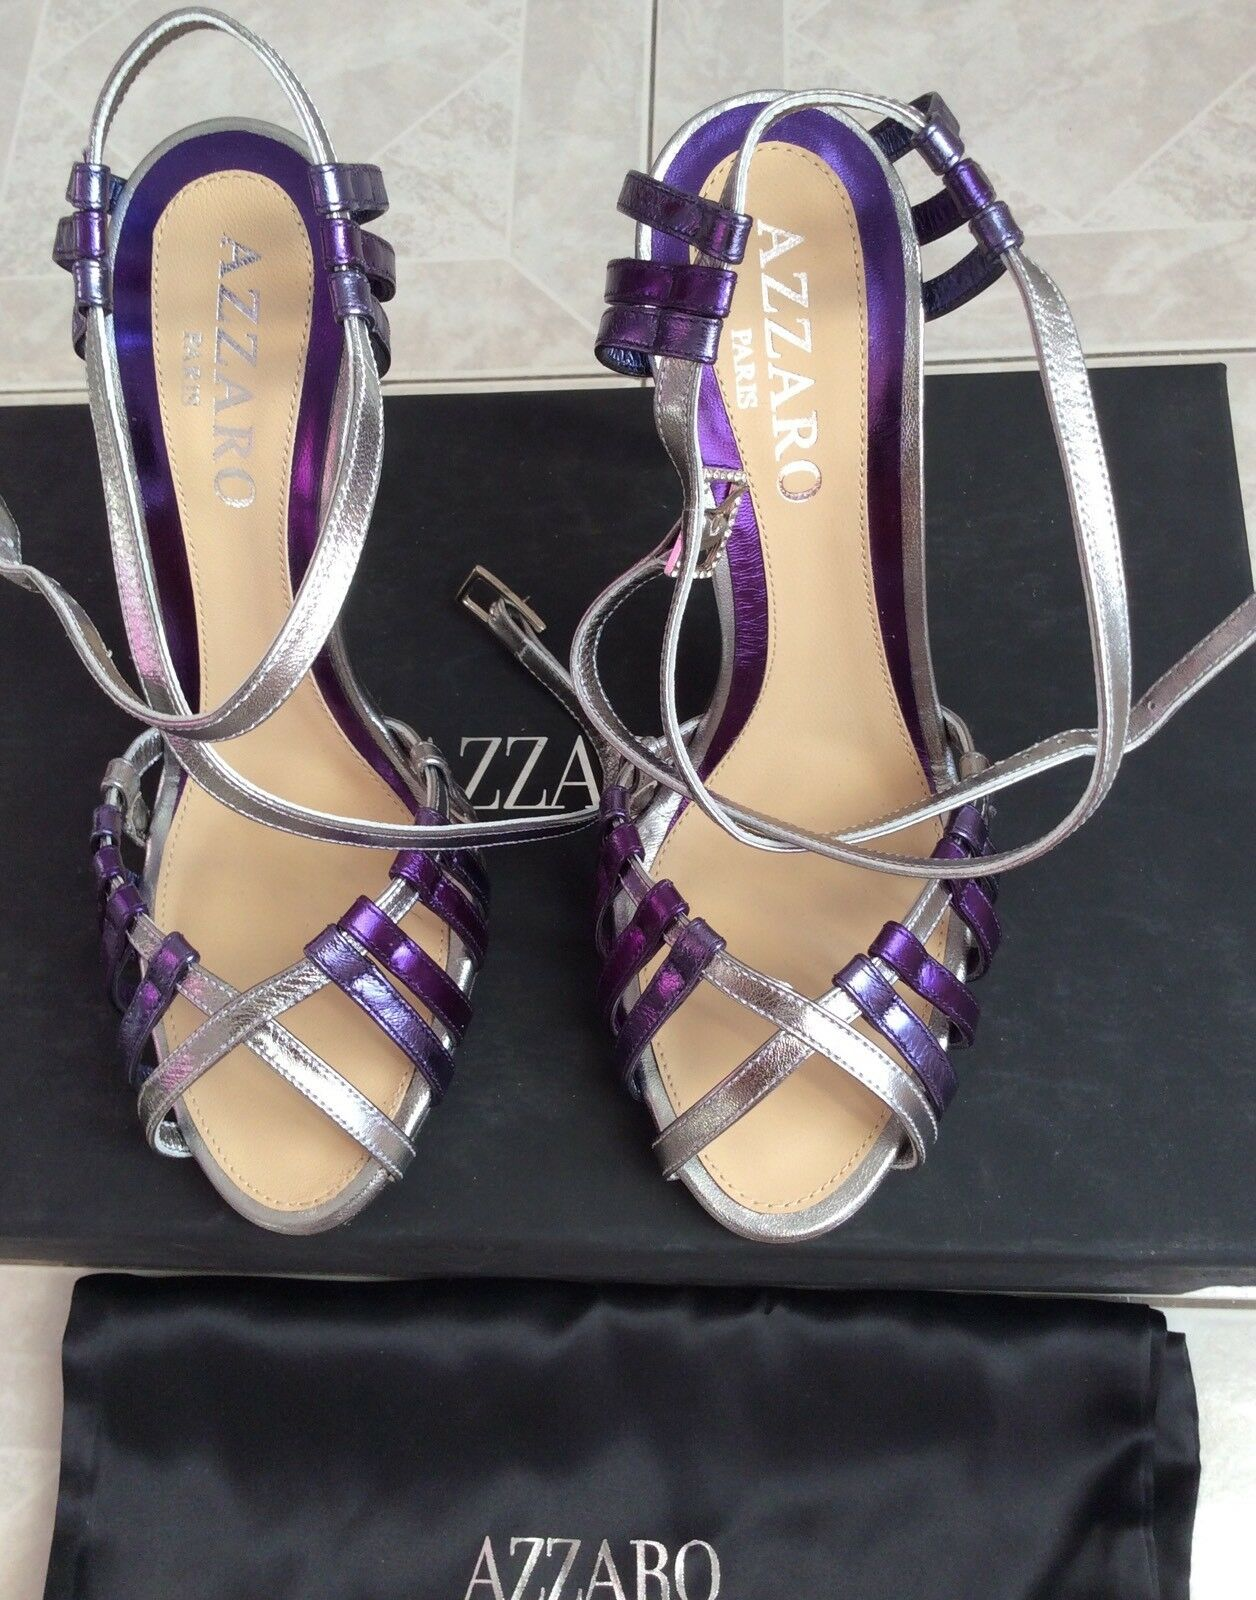 Azzaro Sandals zapatos plata púrpura Leather Talla 36. 36. Talla New 21268f